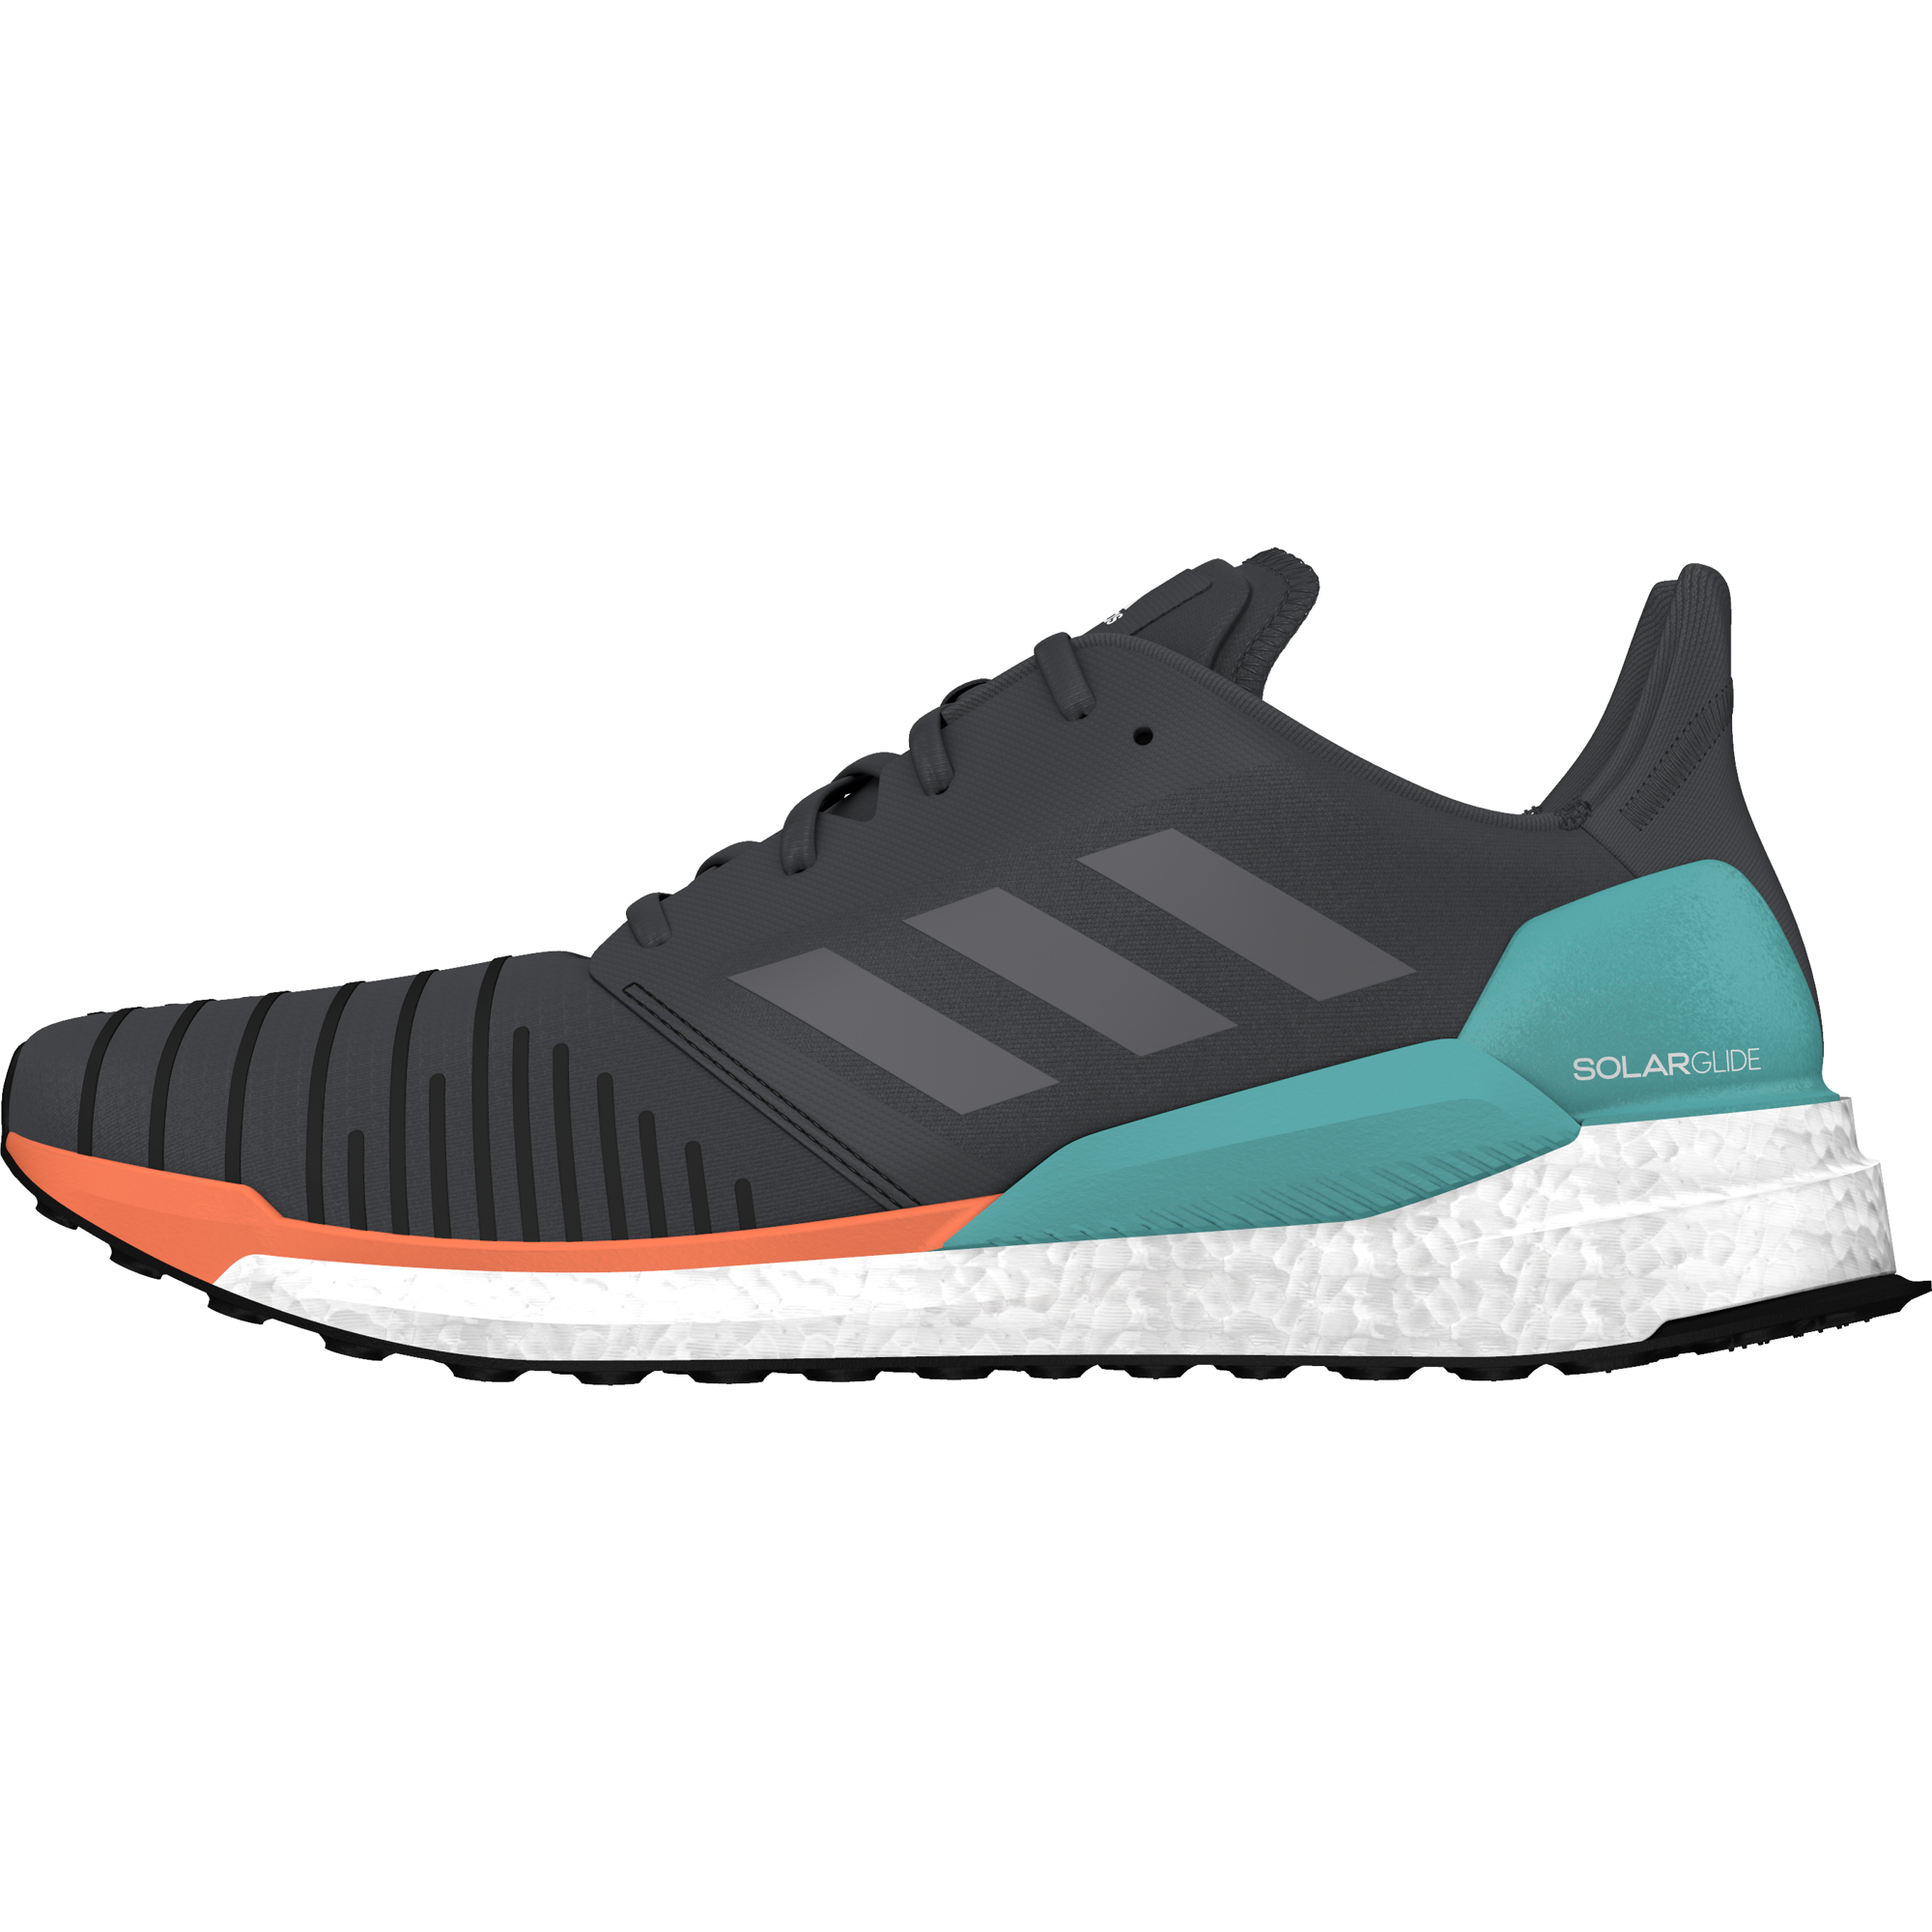 ADIDAS Sonic Boost M Running Shoes For Men